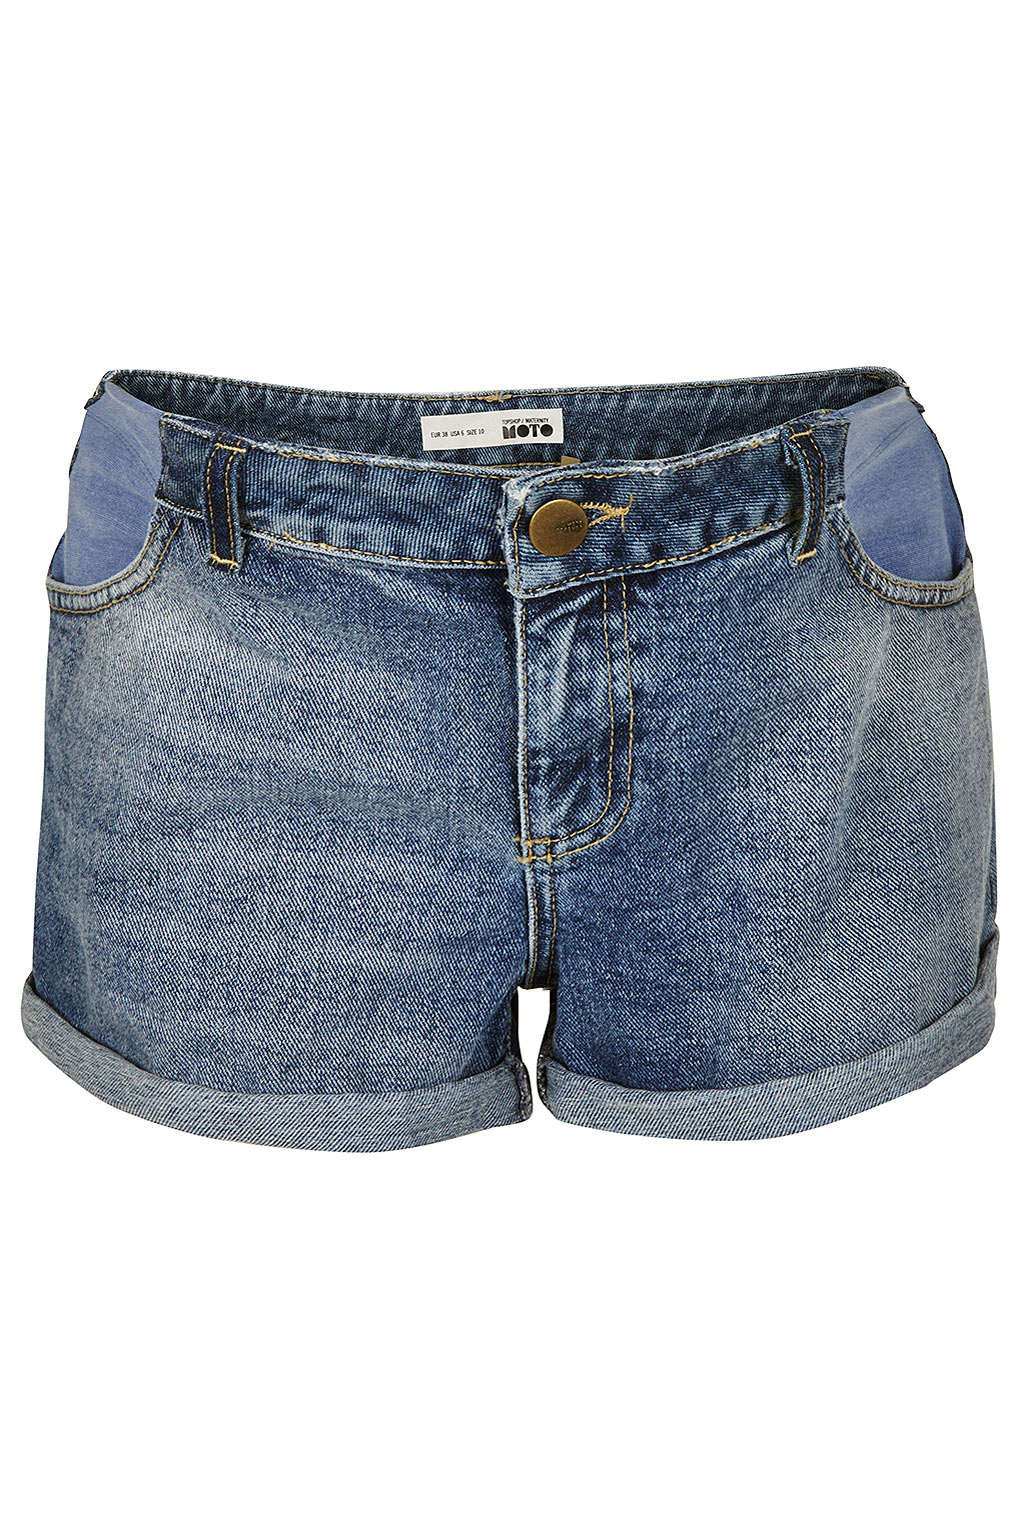 Topshop Maternity Mid Blue Denim Shorts in Blue | Lyst